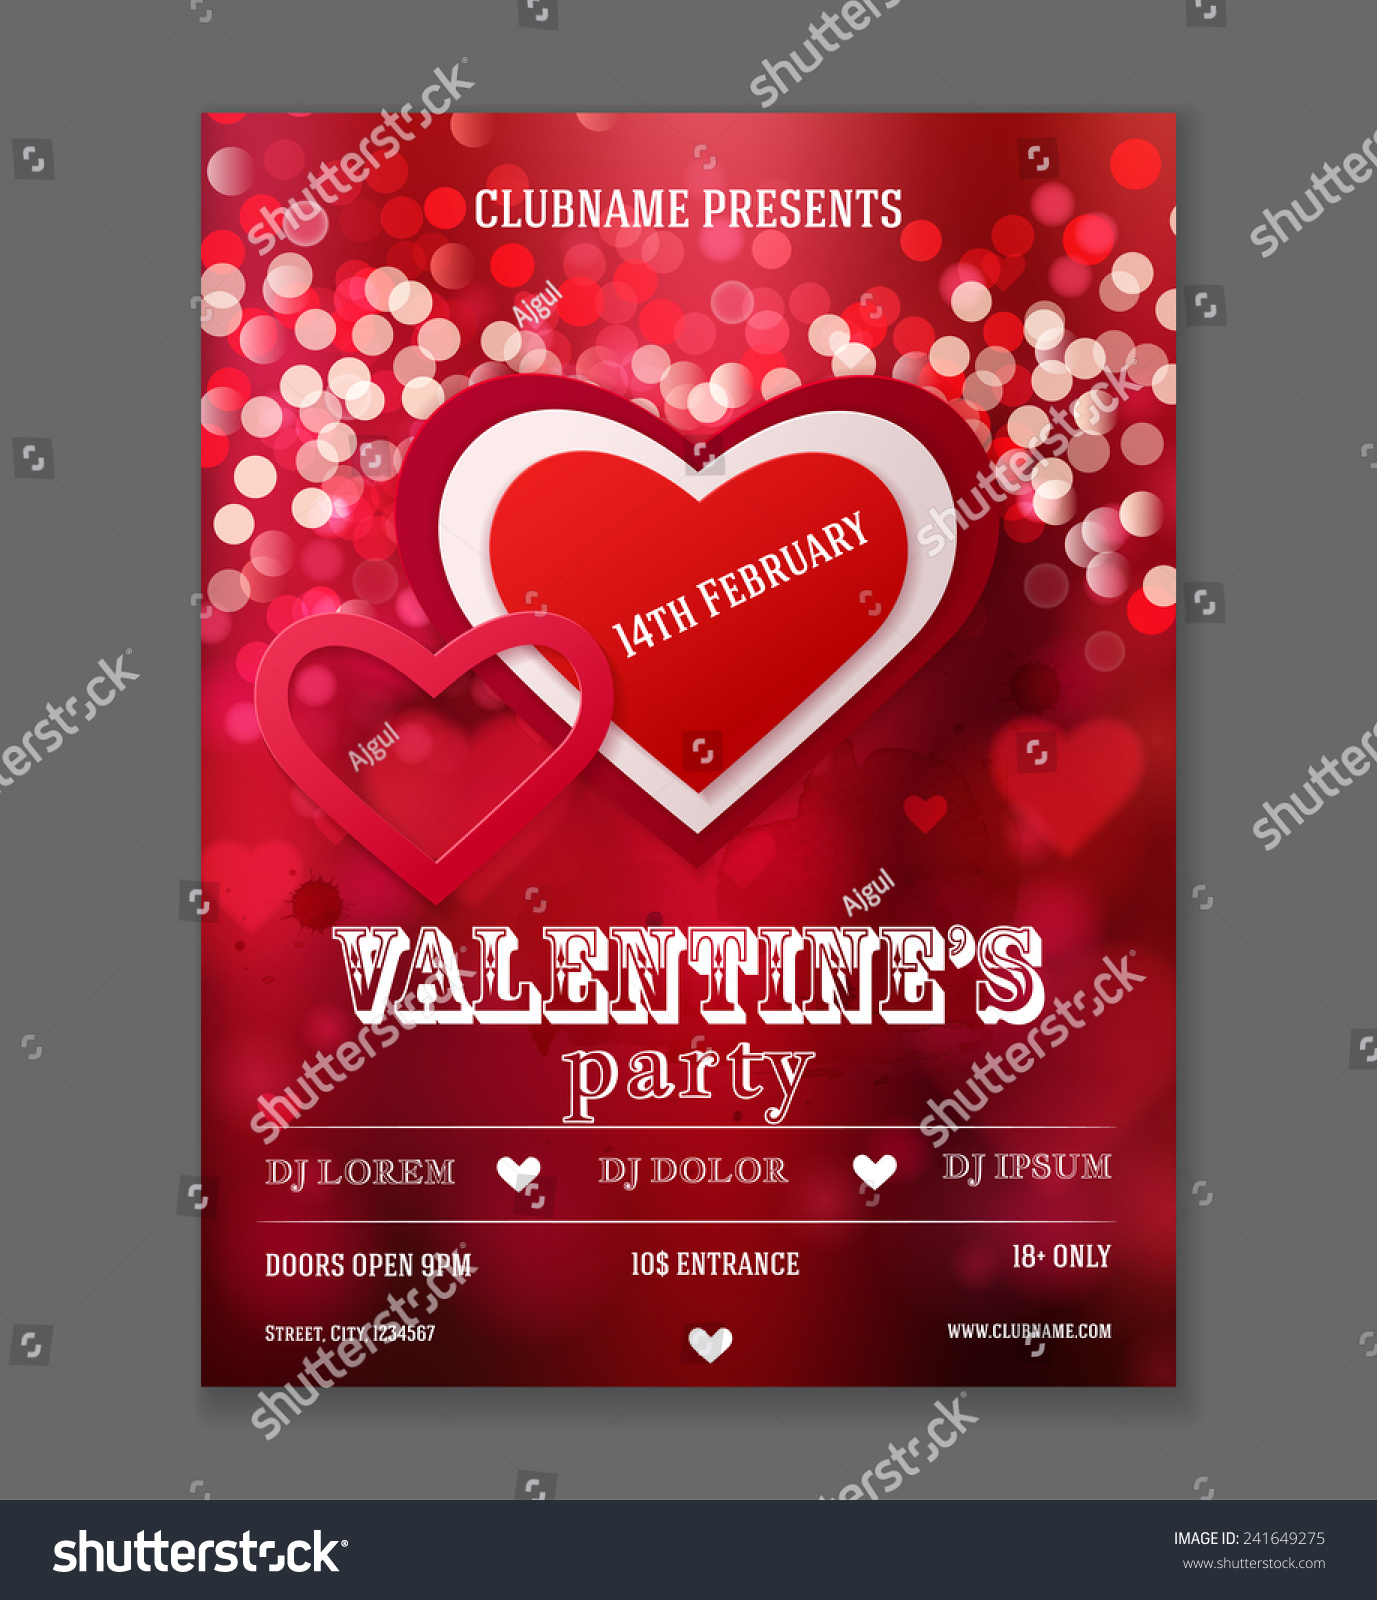 Valentines Day Party Flyer Design Vector Stock Vector